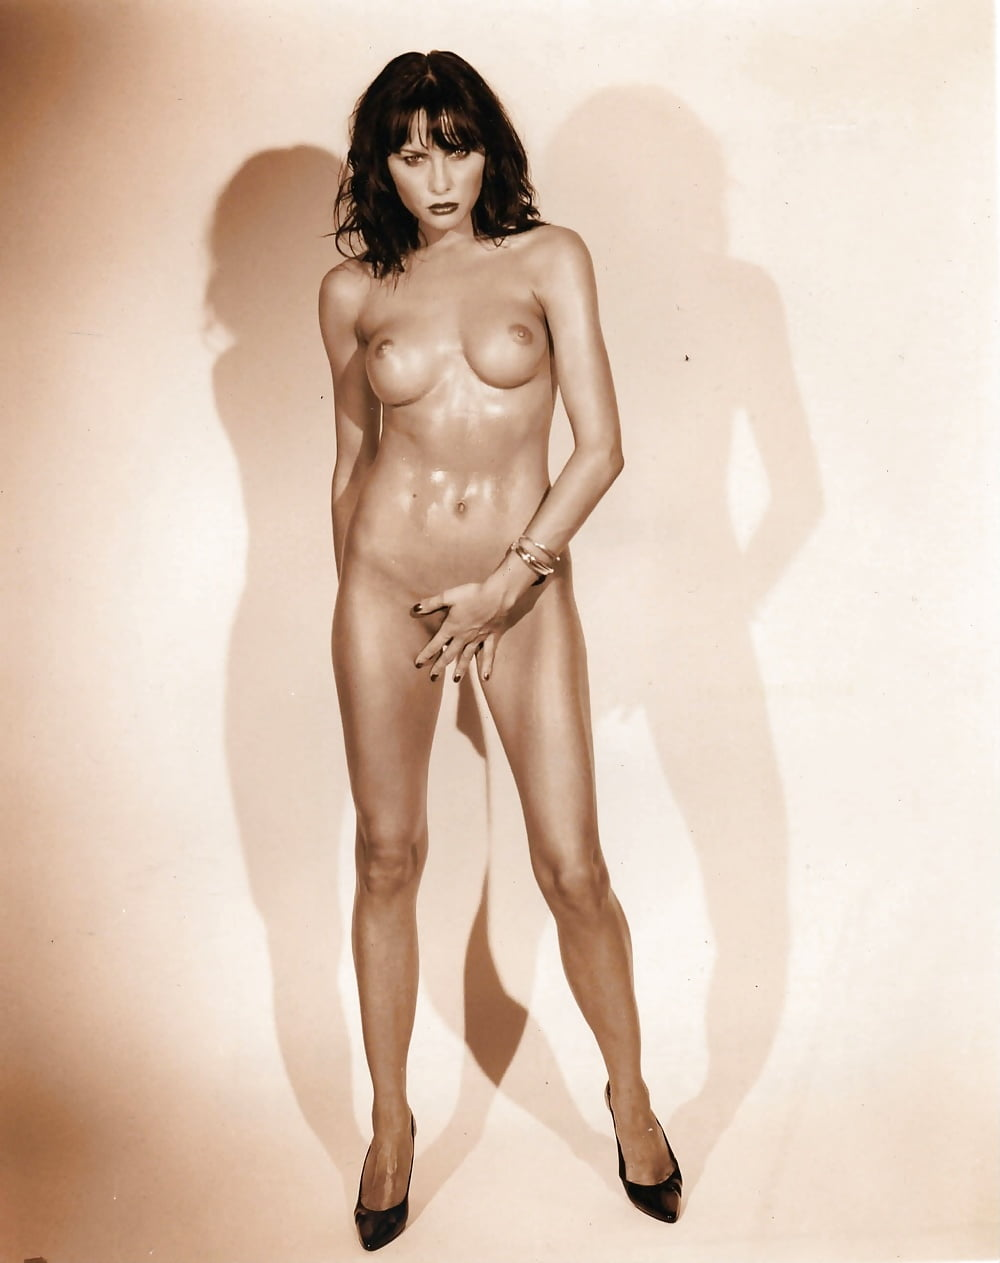 Nude melania photos-3467